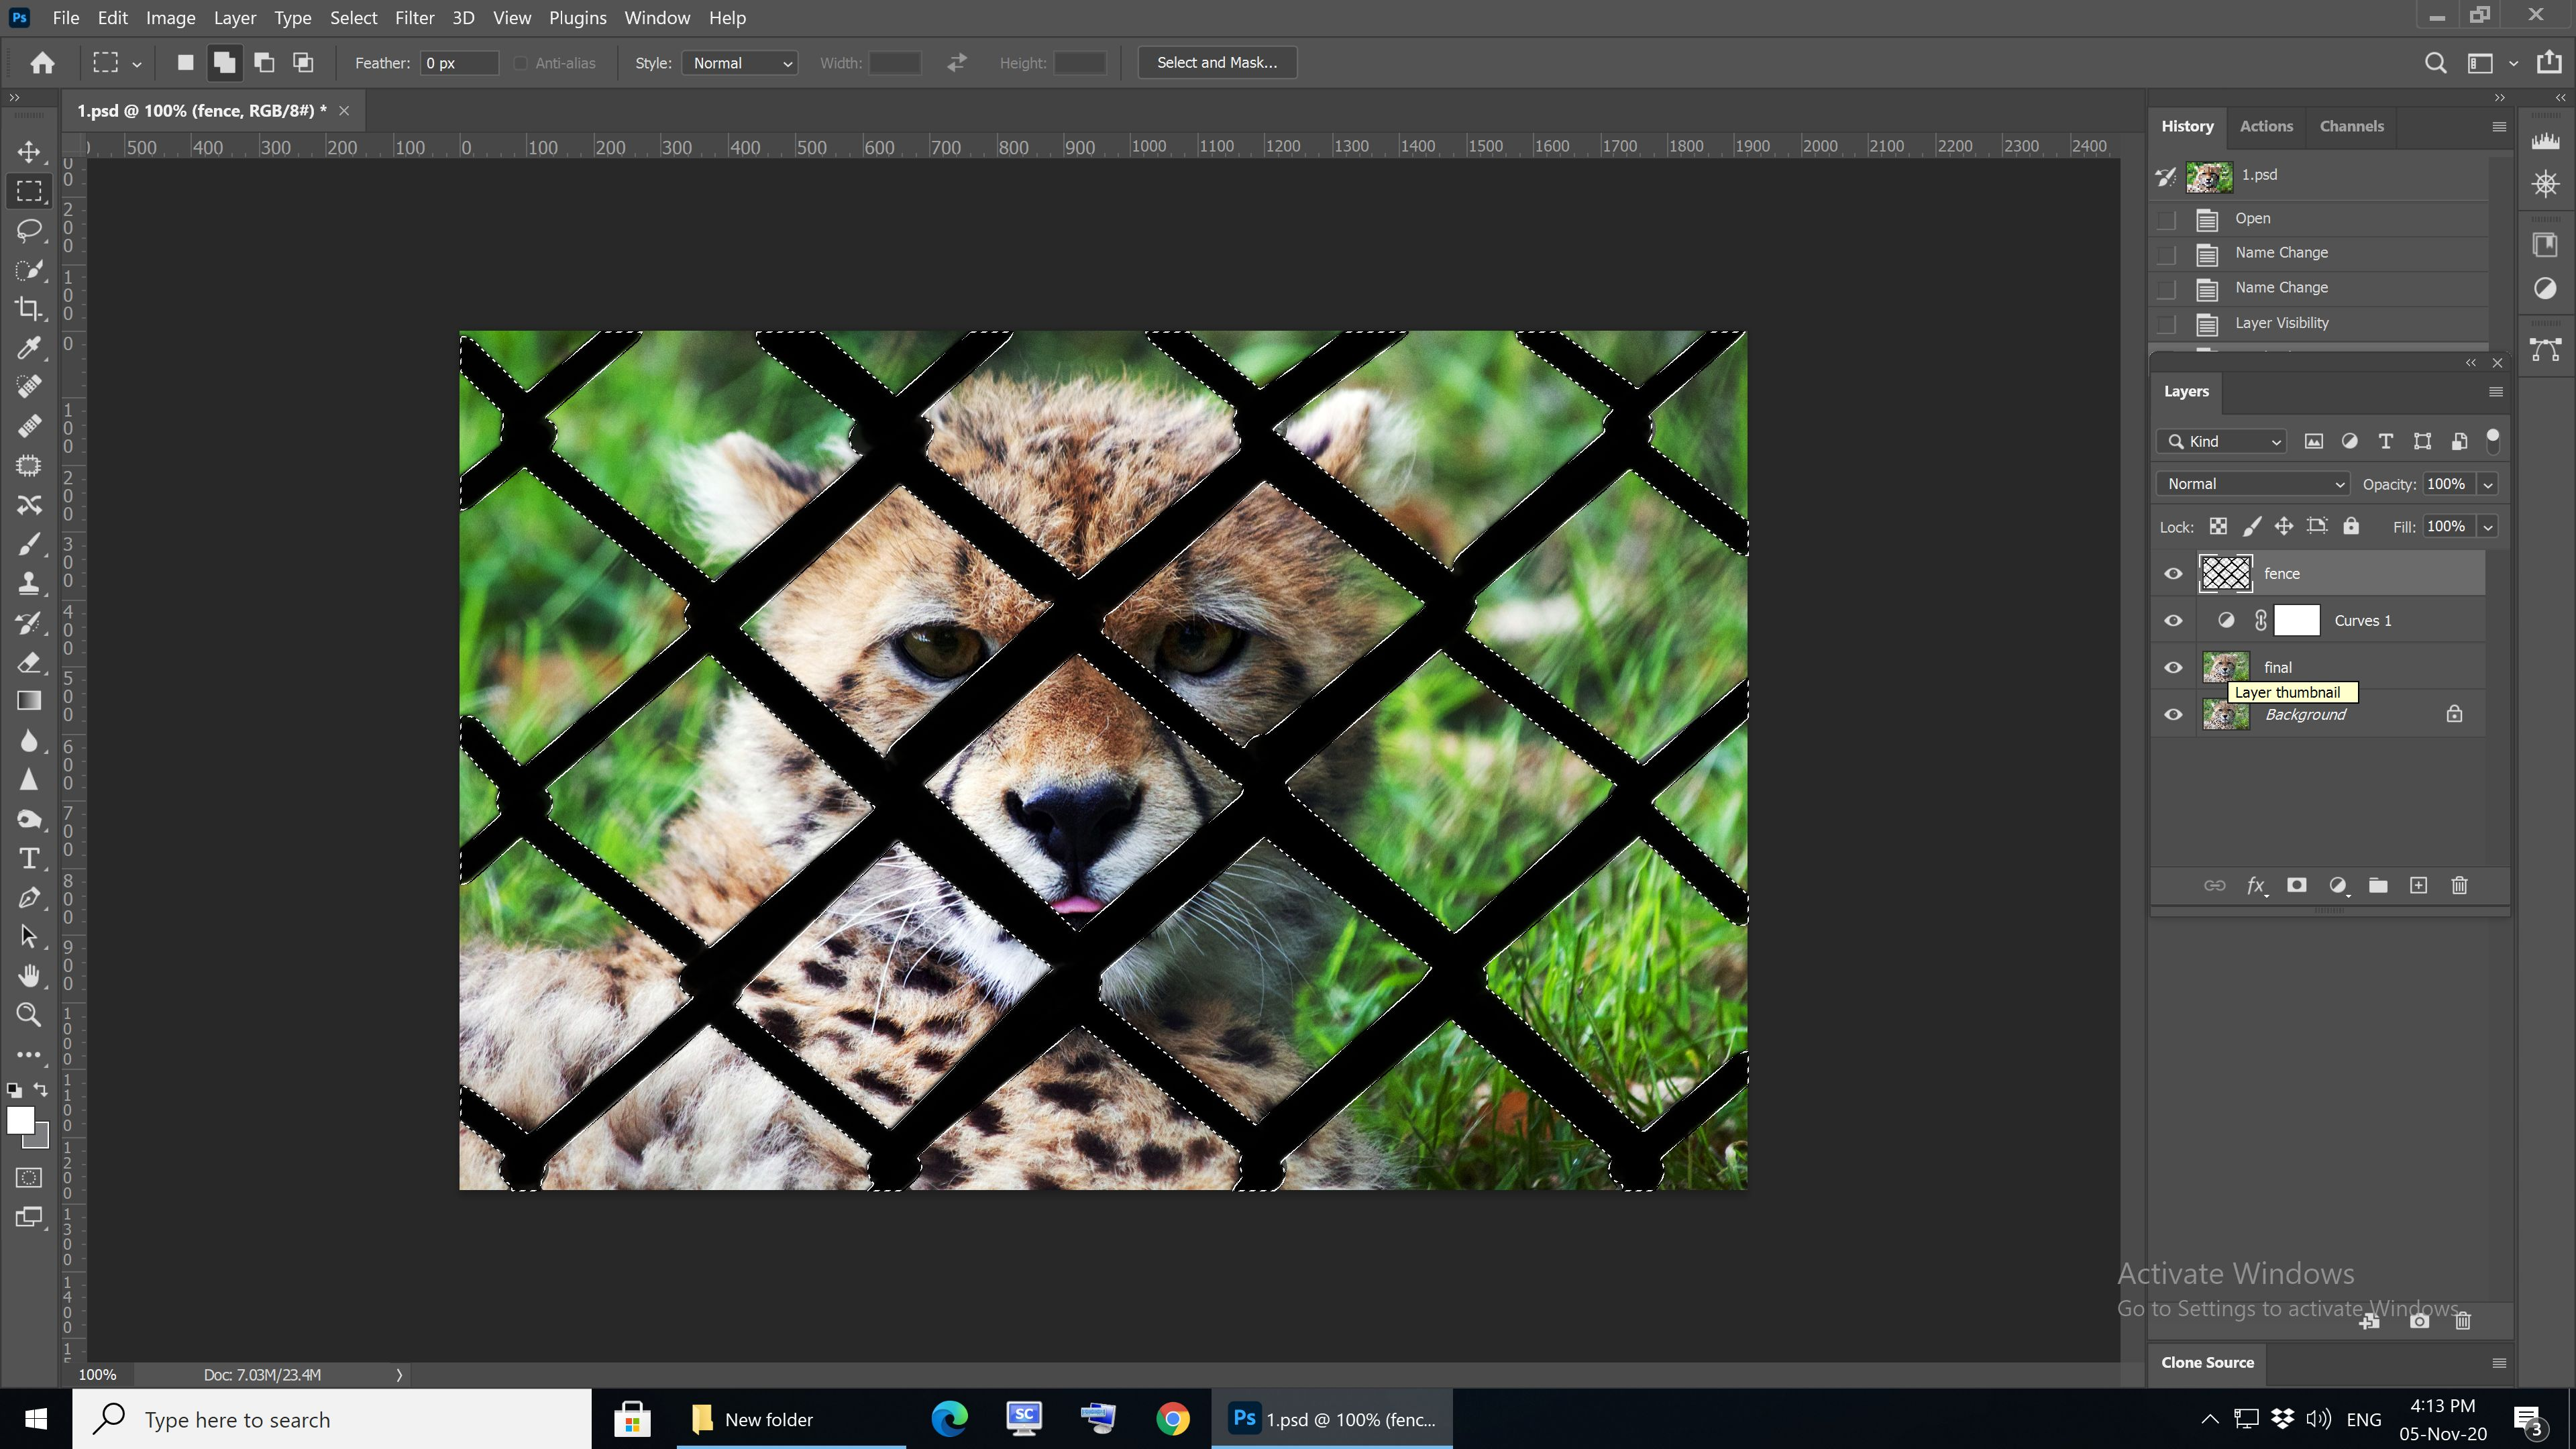 Remove Fence in Photoshop